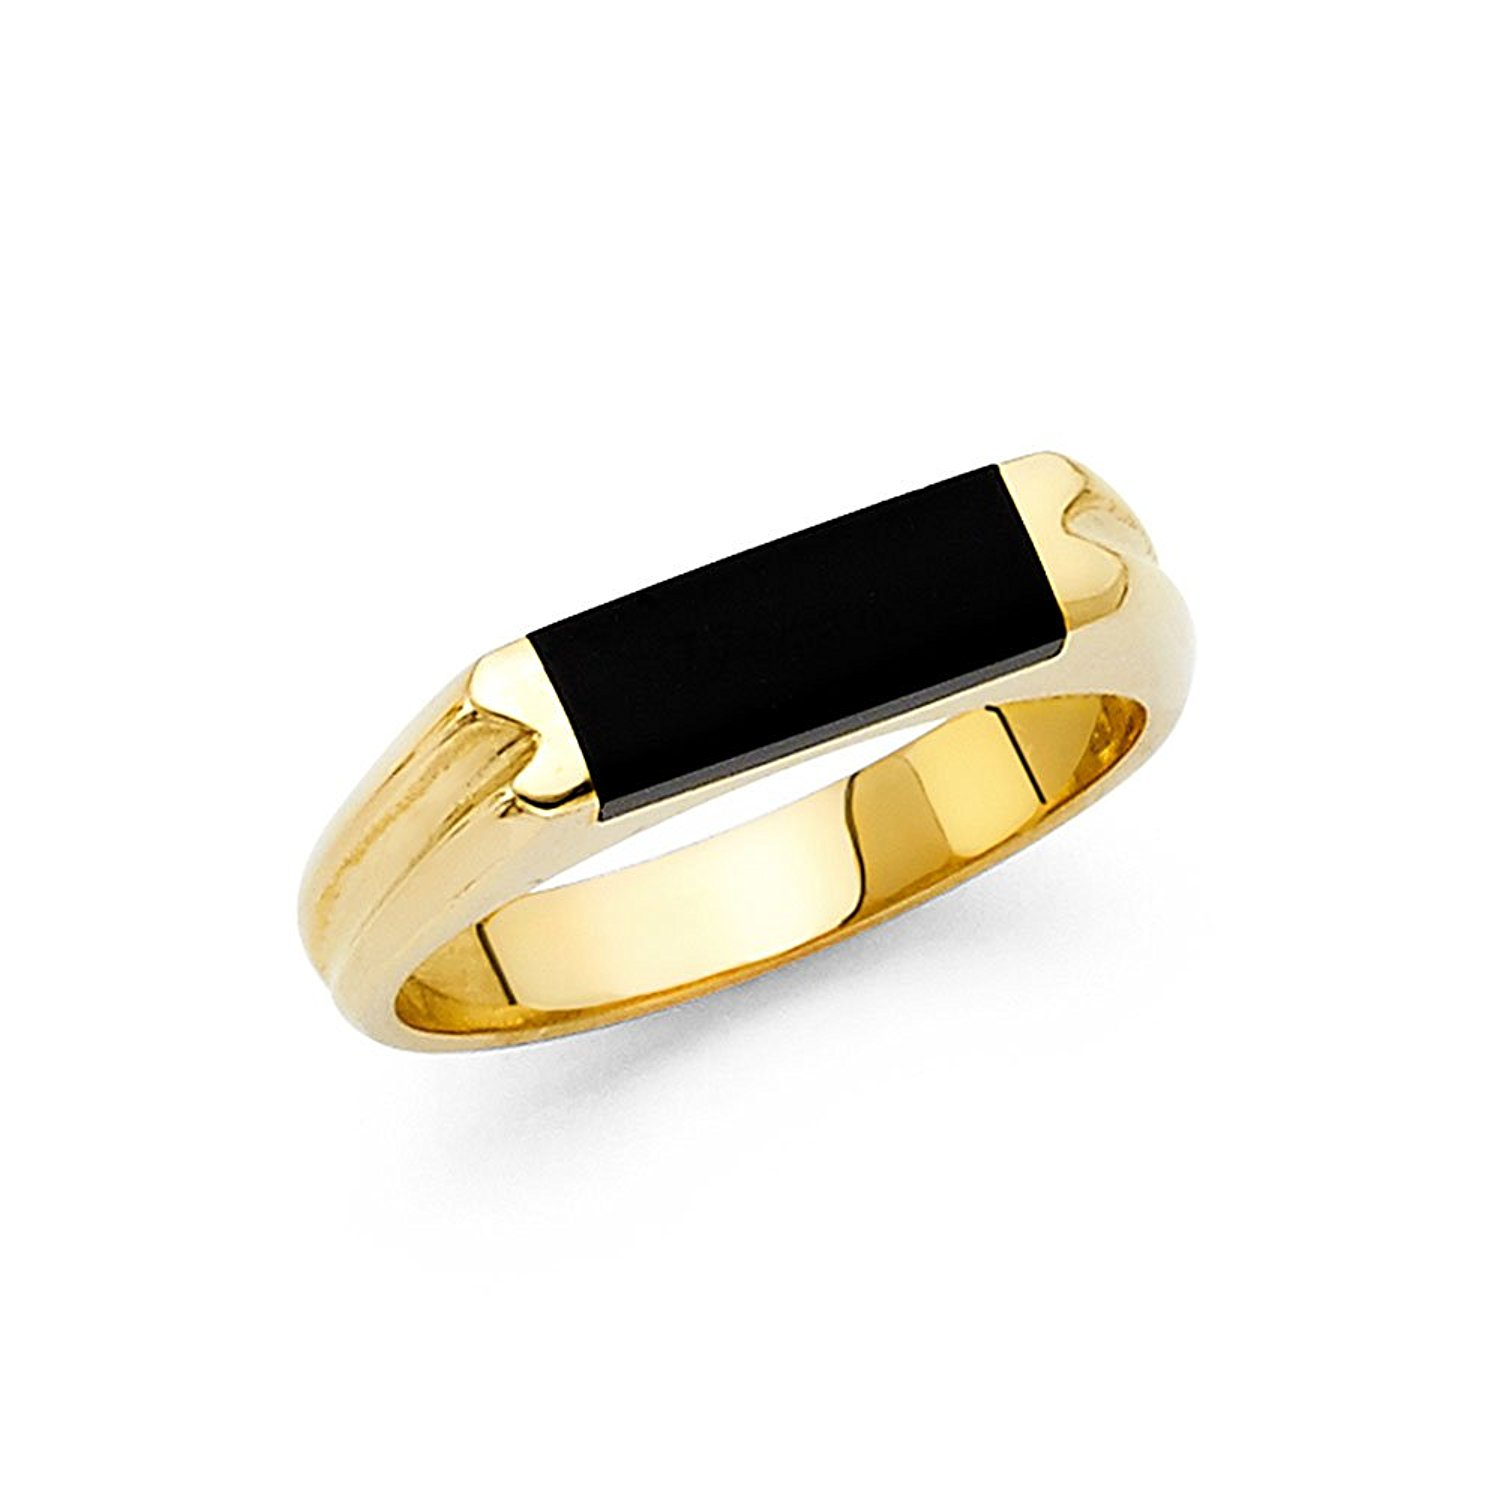 Onyx Ring Solid 14k Yellow Gold Band Mens Black Diamond Cut Stylish Square Design Polished Fancy